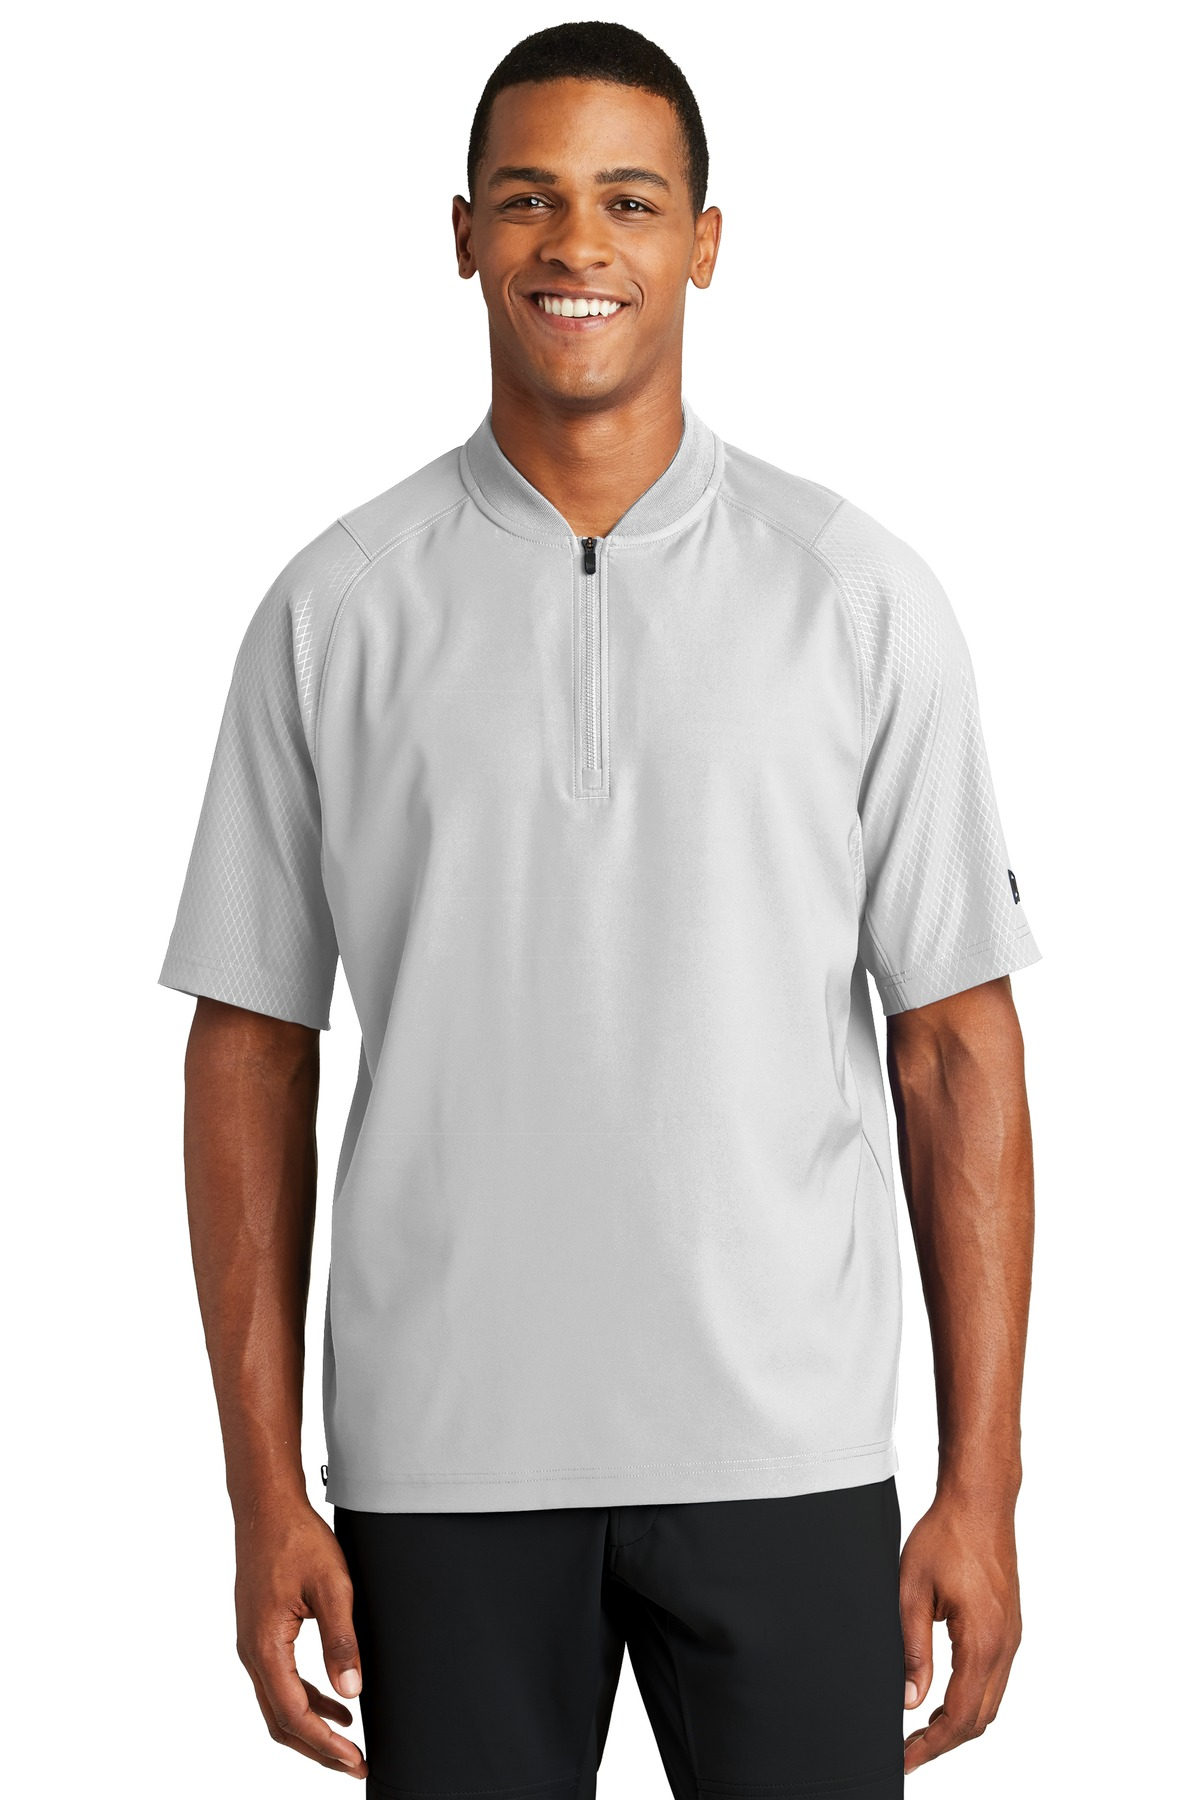 New Era  ®  Cage Short Sleeve 1/4-Zip Jacket. NEA600 - White